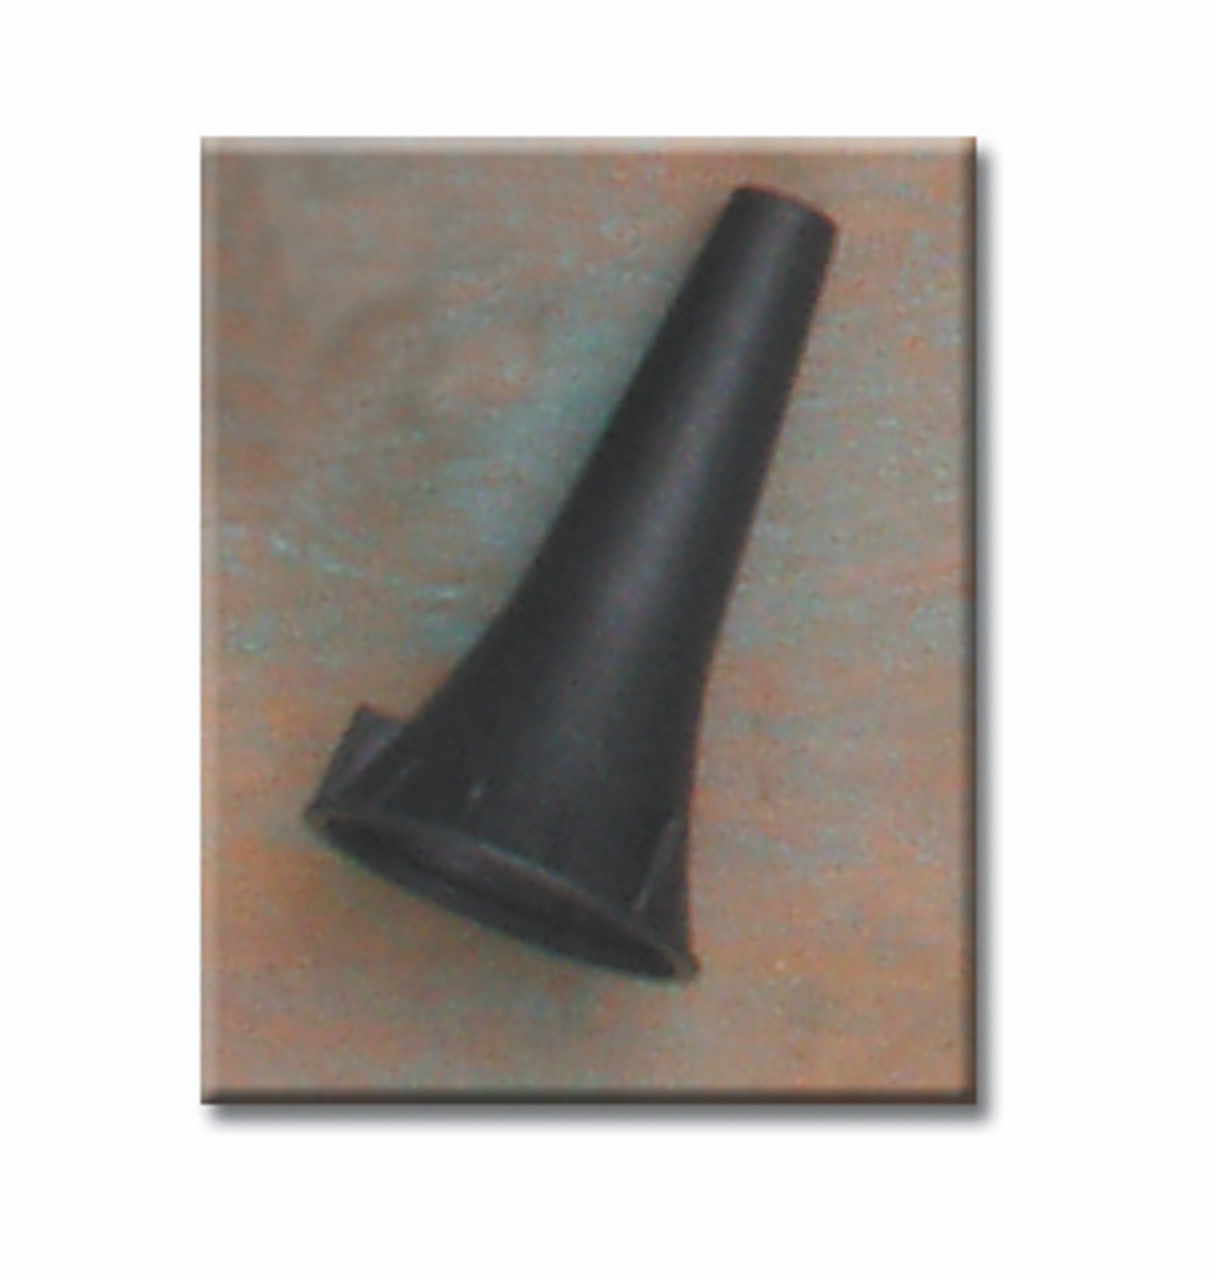 ADC 4.25mm Specula (bag of 850)